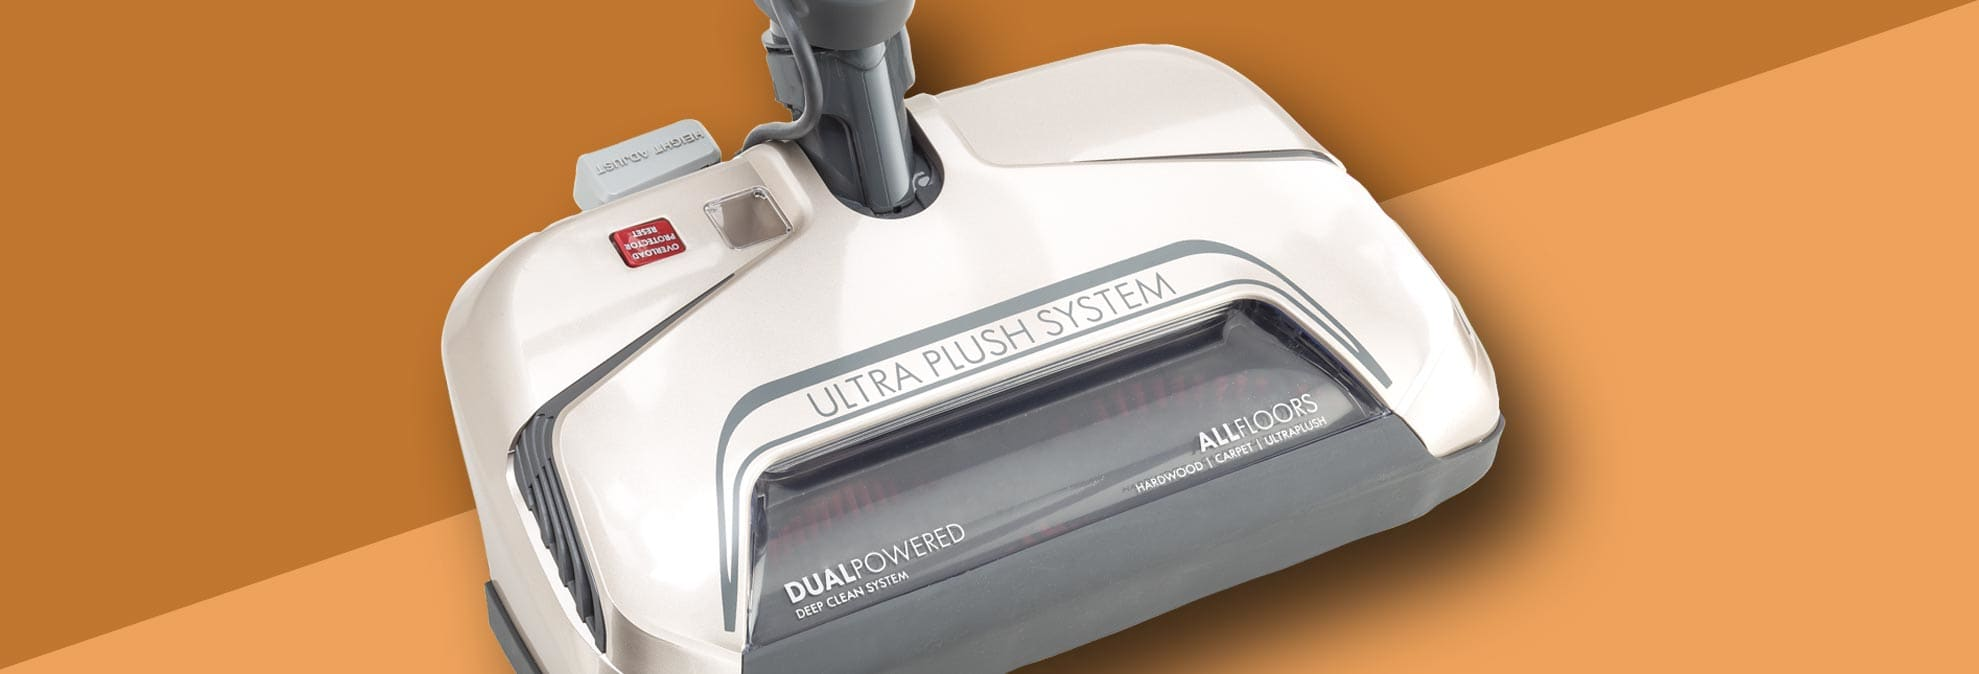 best vacuums for allergy sufferers consumer reports. Black Bedroom Furniture Sets. Home Design Ideas